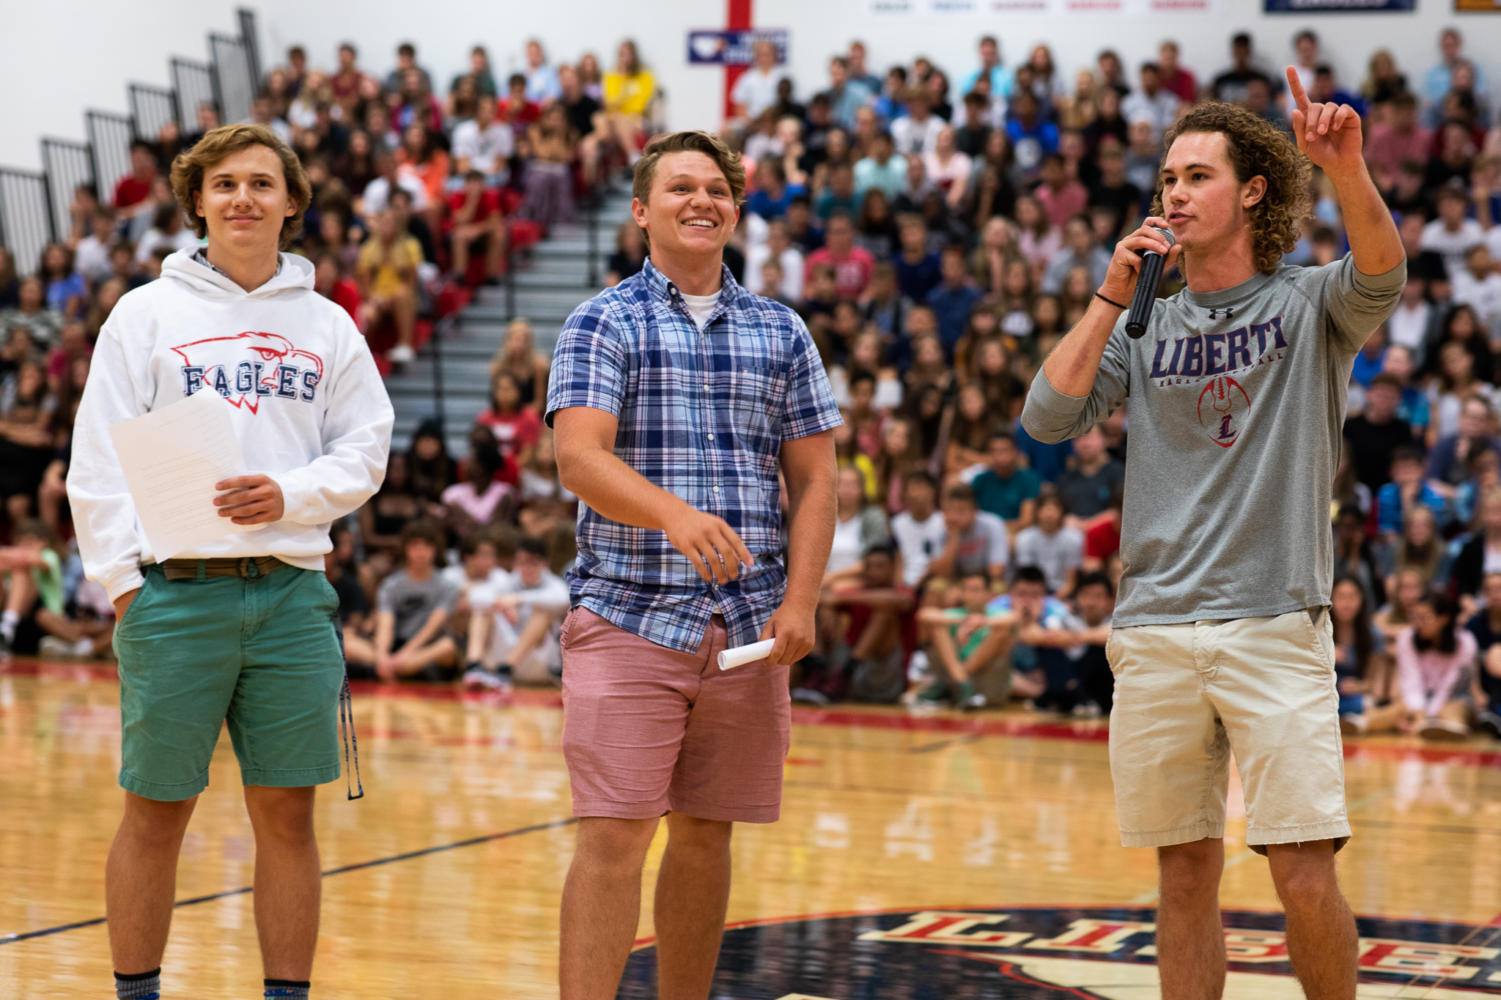 Carson Brown, Hunter Perkins and Nolan Bone talked to the crowd about the Eagles Nest and how to get involved on the first day of school.